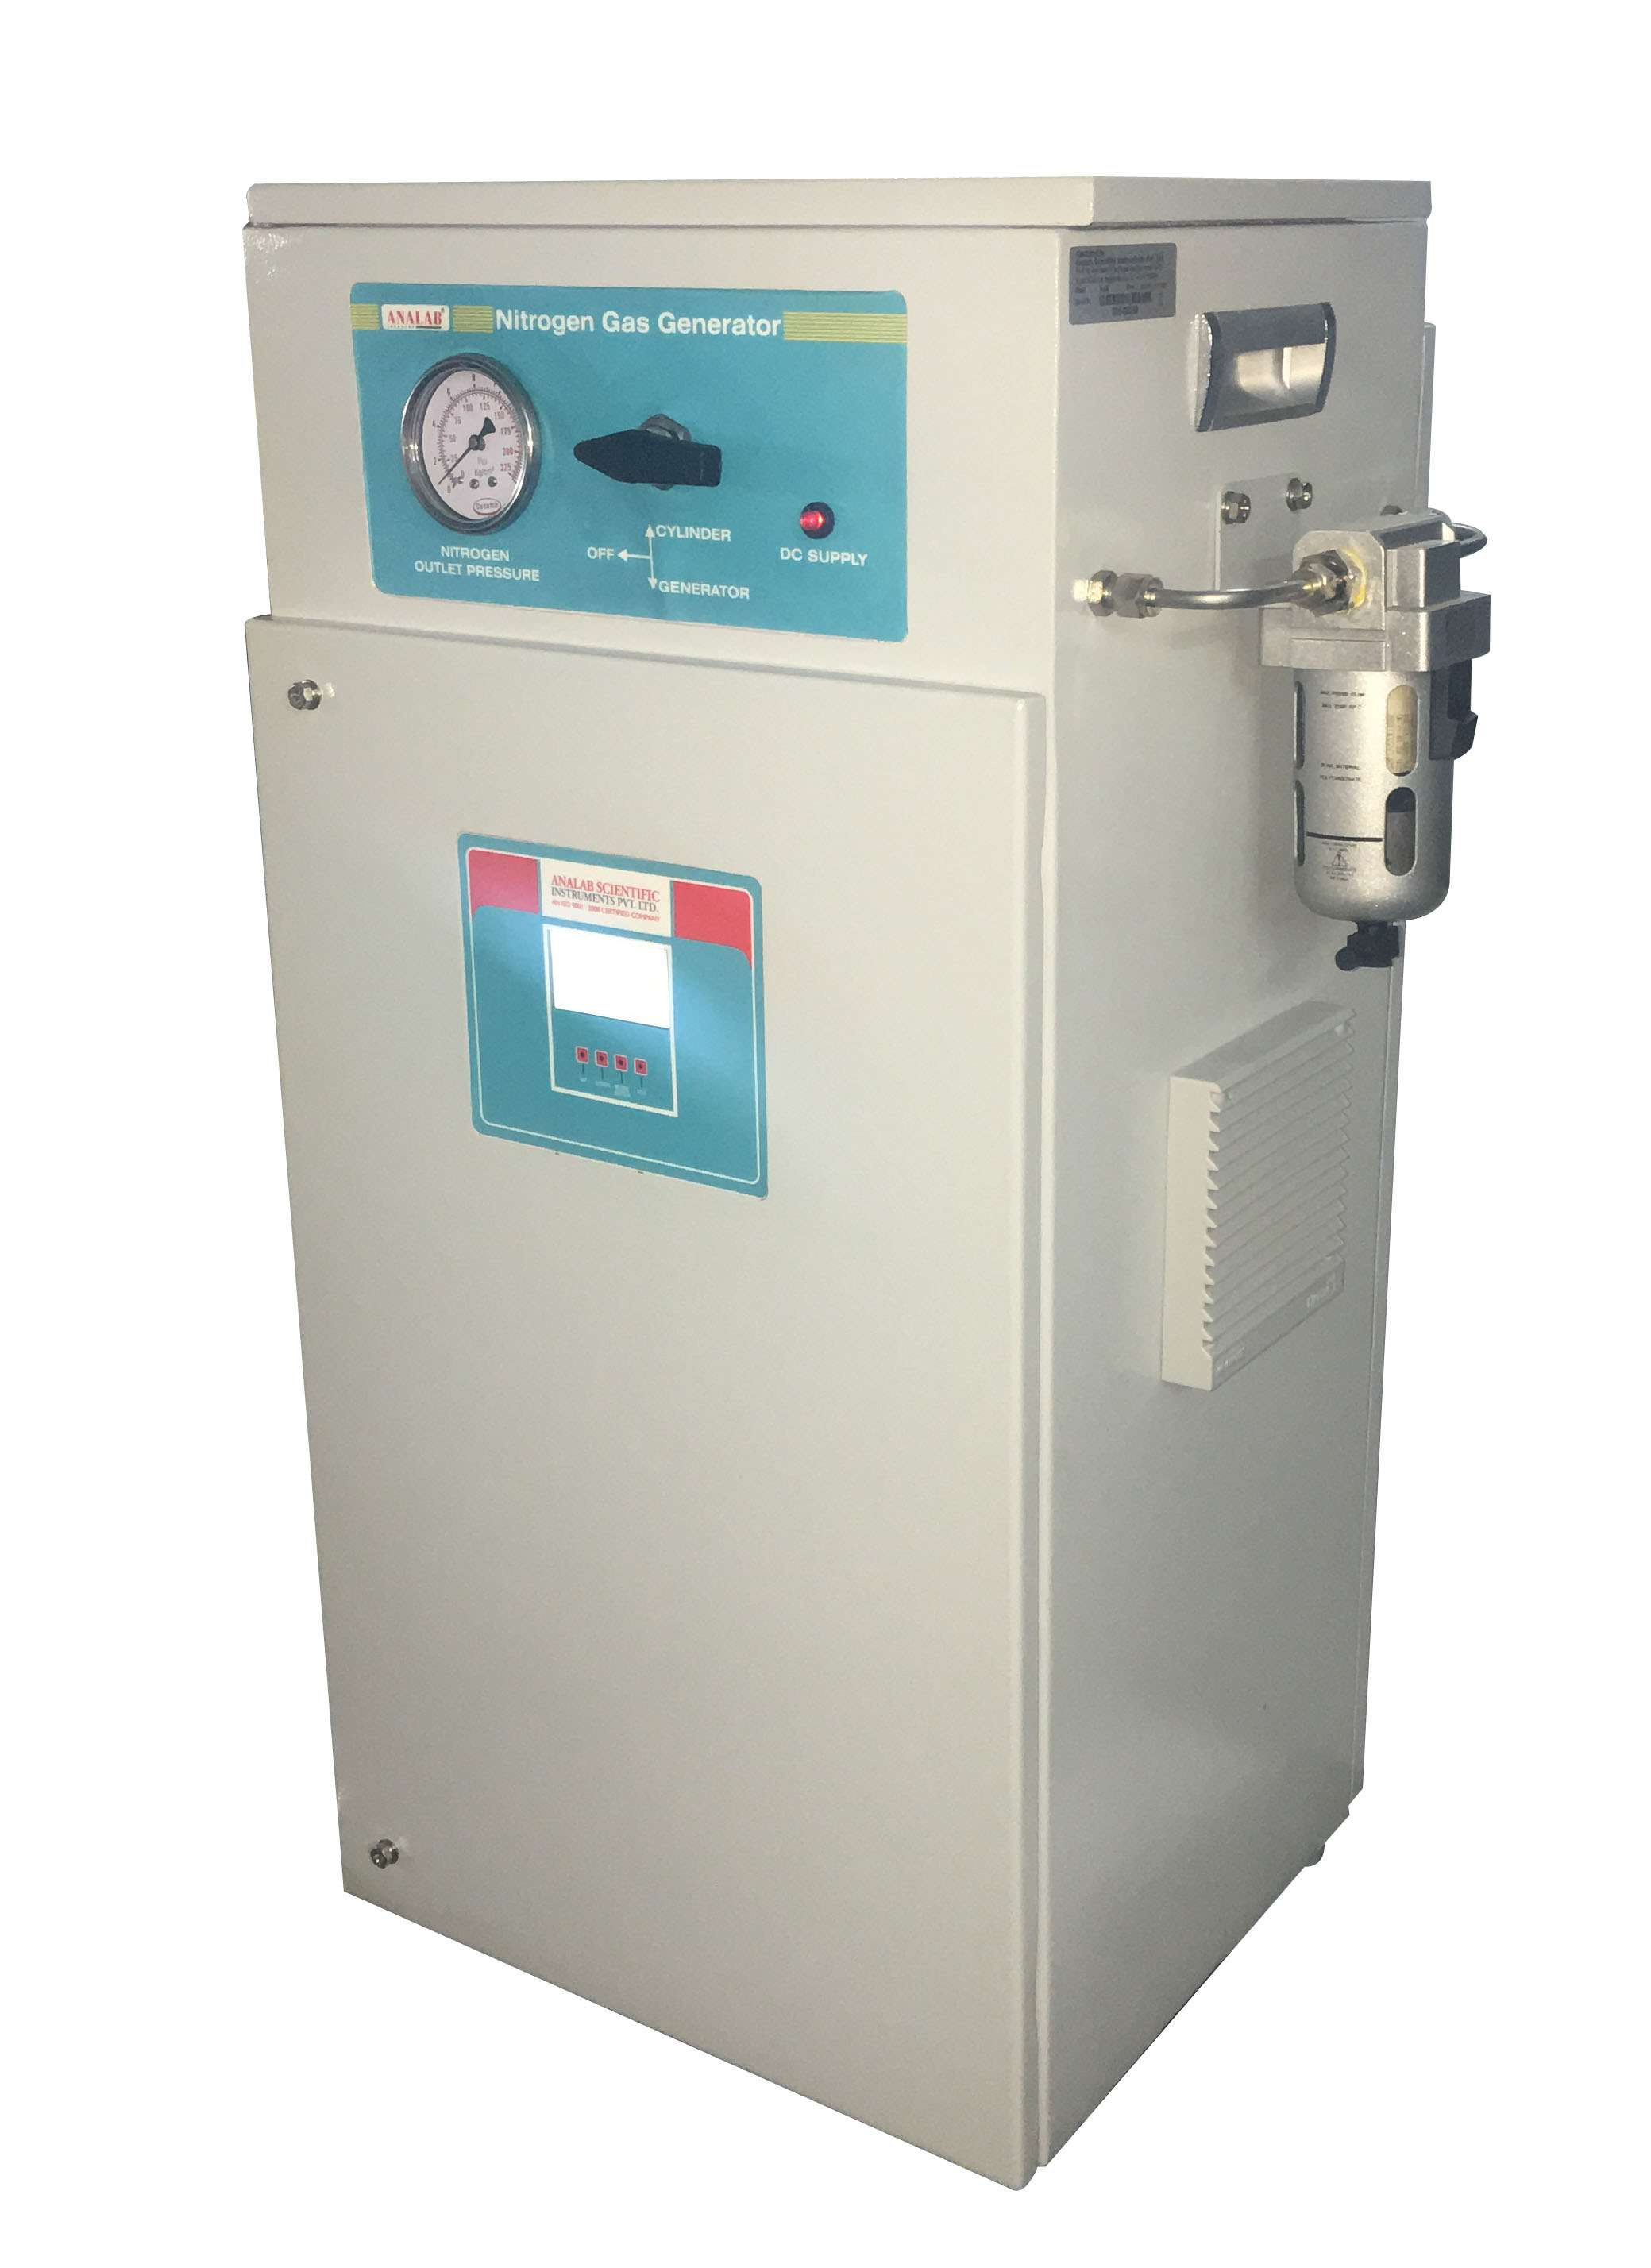 Nitrogen Gas Generator (without Air Compressor) - (Capacity 100 liter/min, Purity of < 97 %)